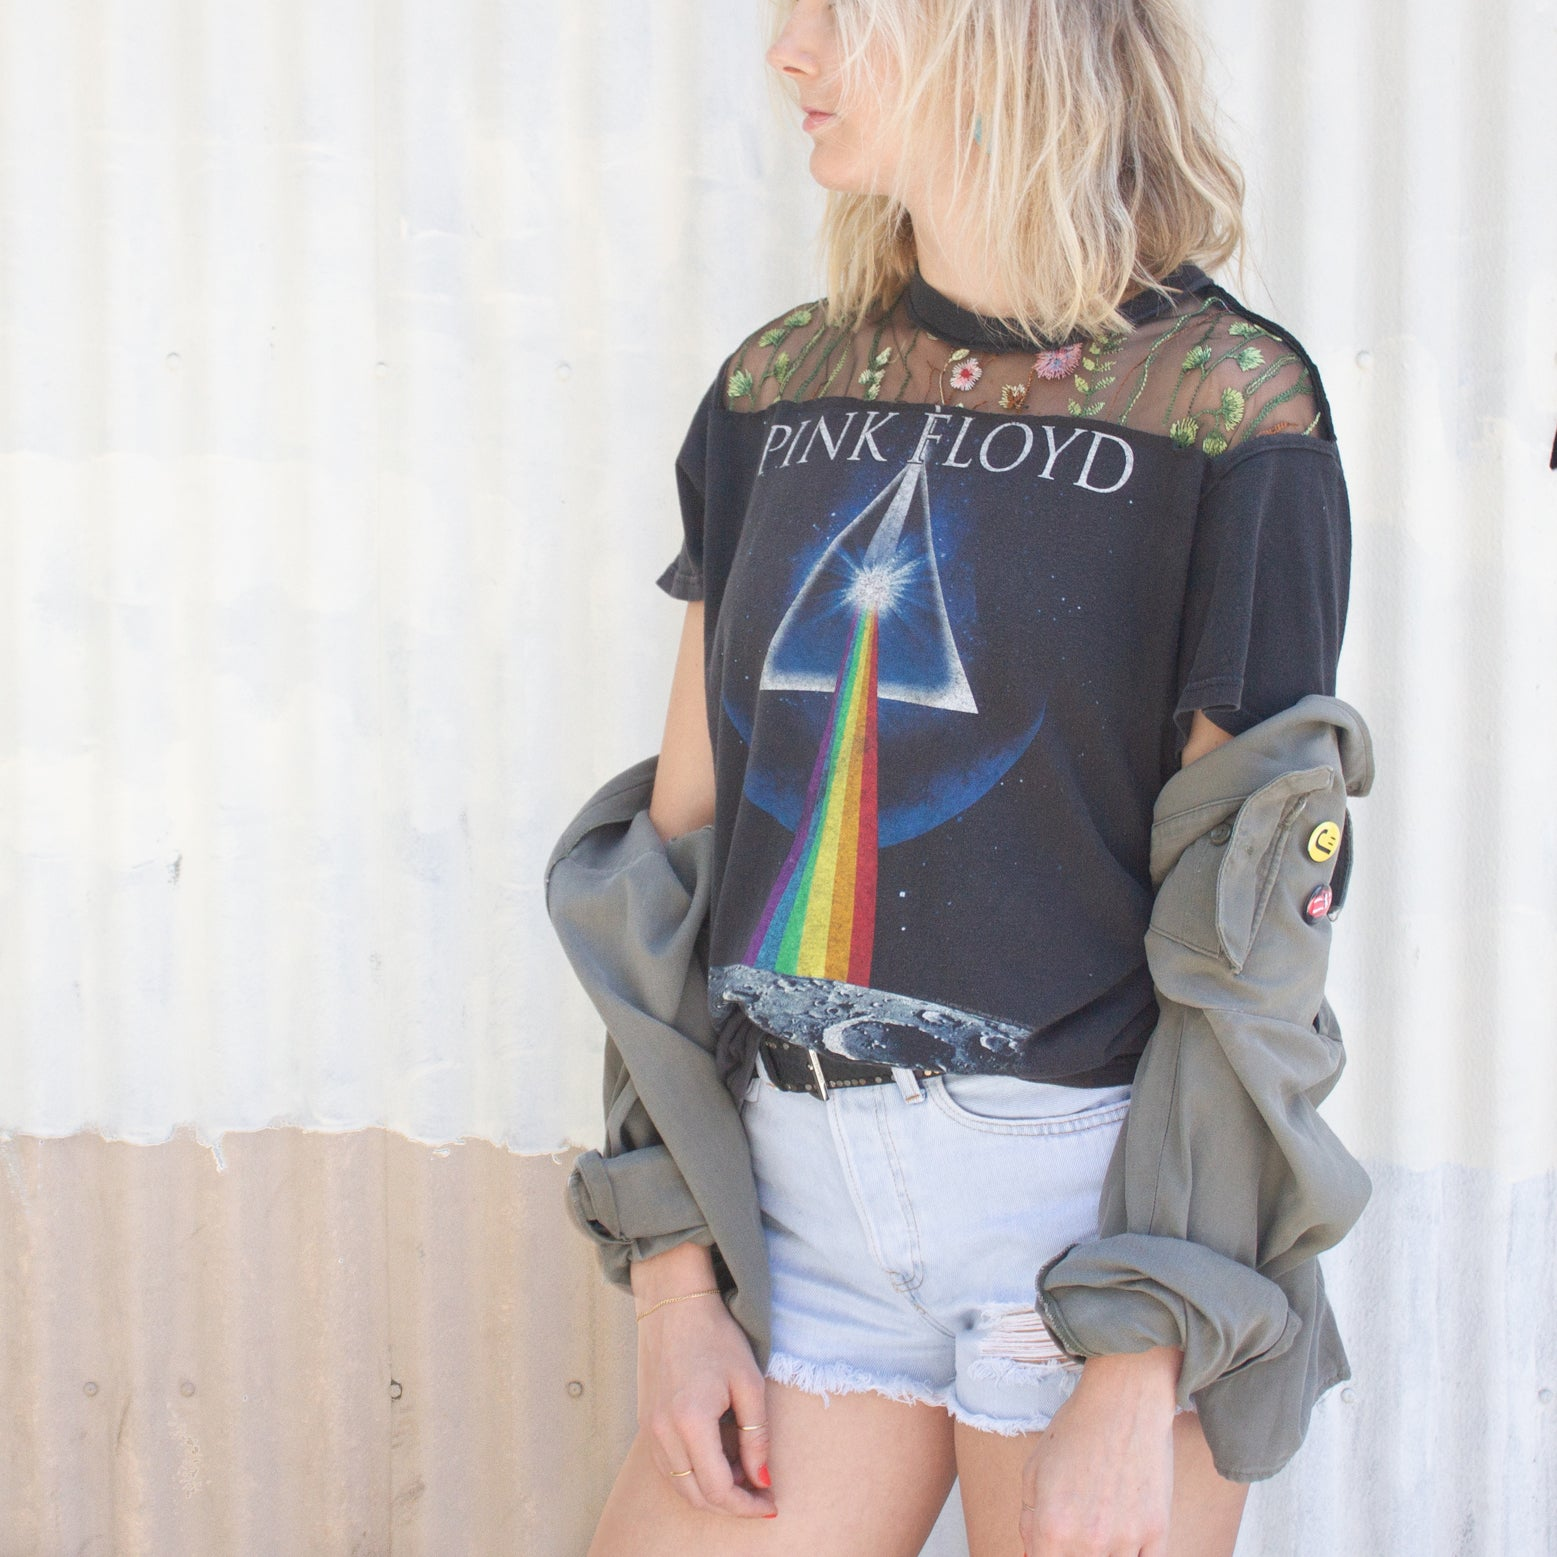 Pink Floyd Tee with Lace